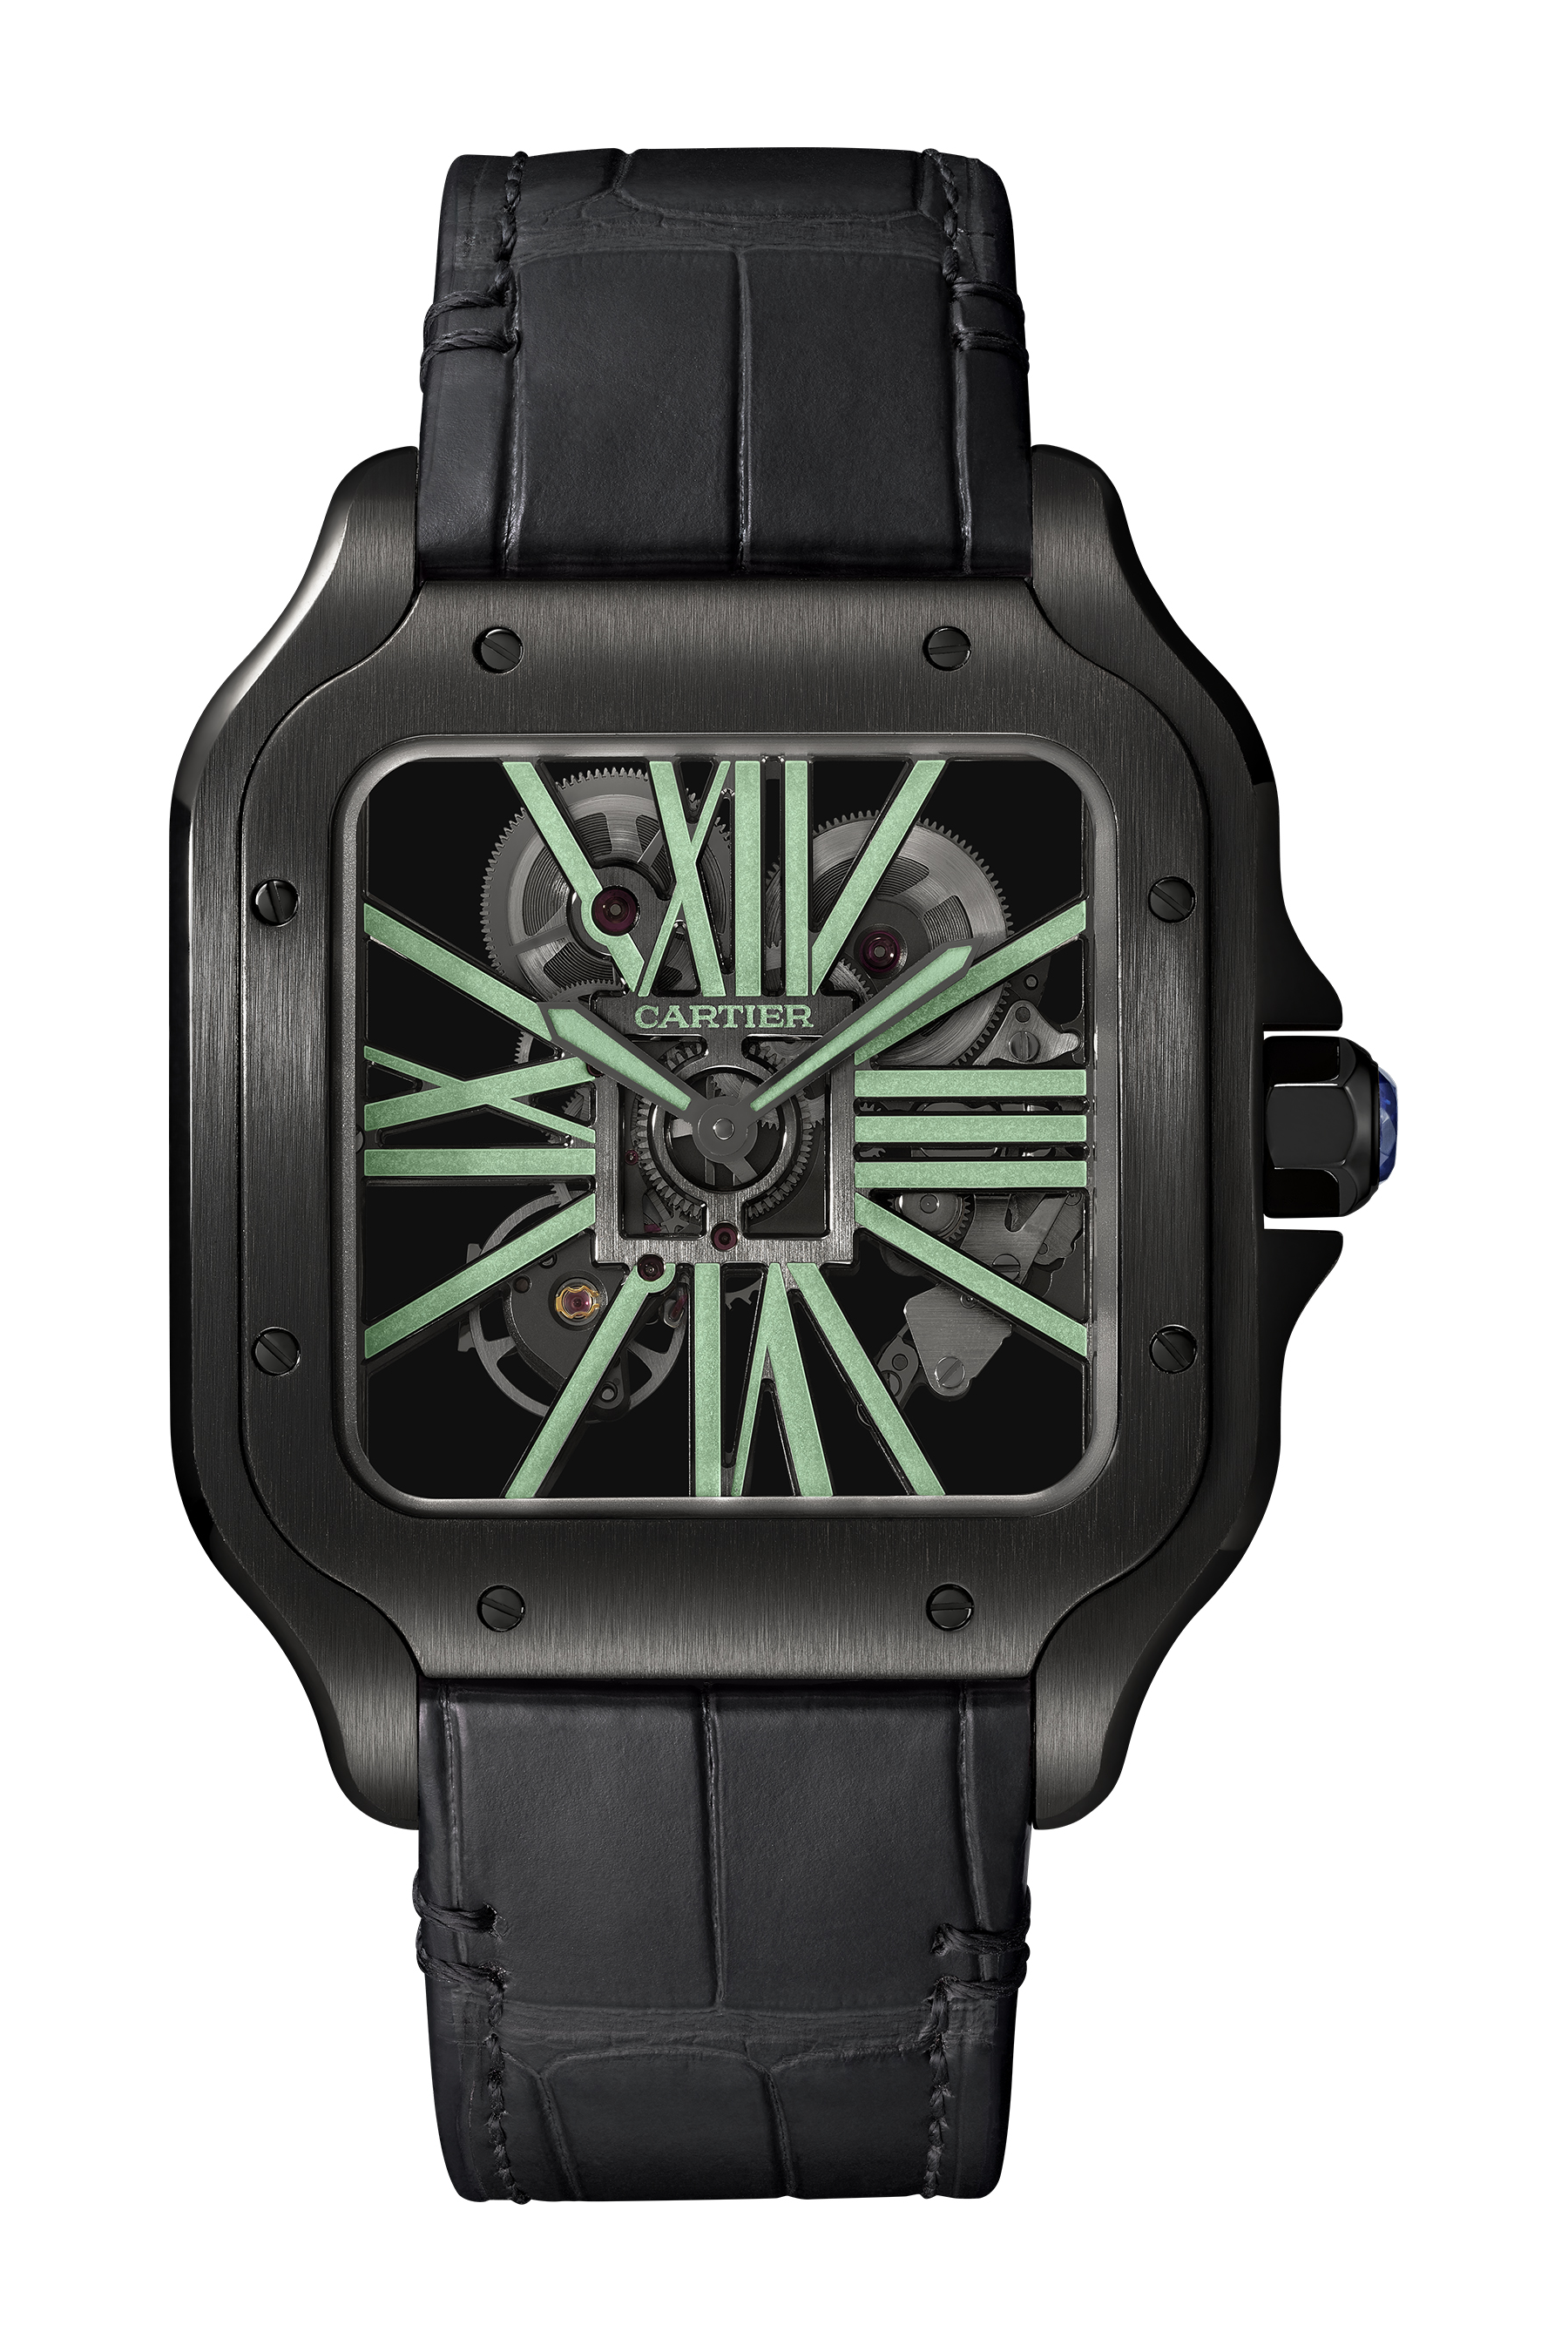 63c17c9f92c Cartier Grows the Santos Collection With Chronographs and a Luminous ...